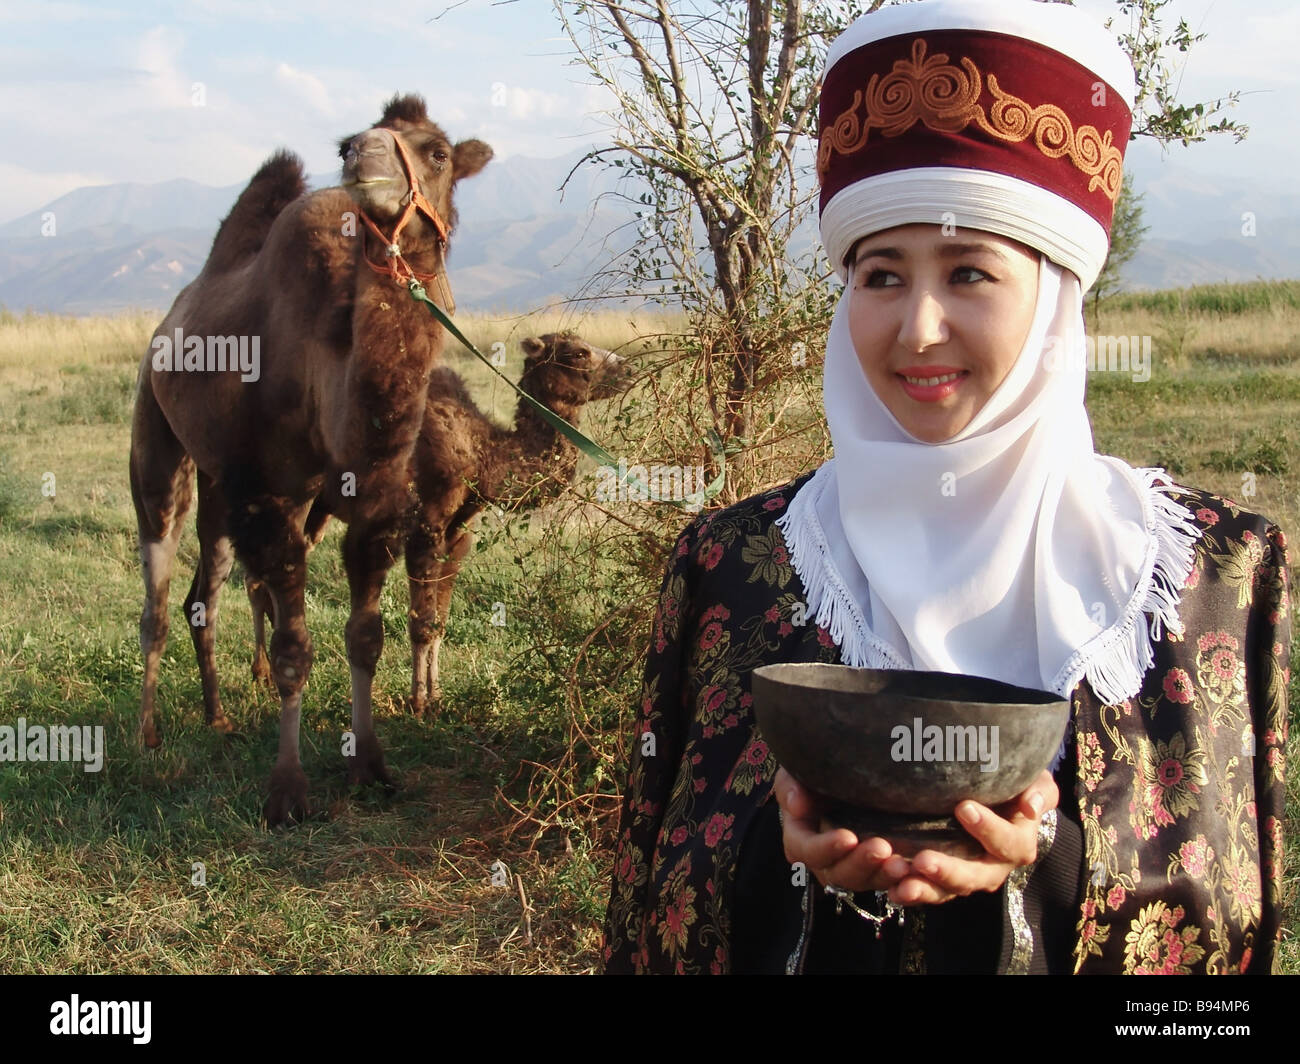 A Kyrgyz woman in folk dress offers guests a drink as her camels are grazing - Stock Image